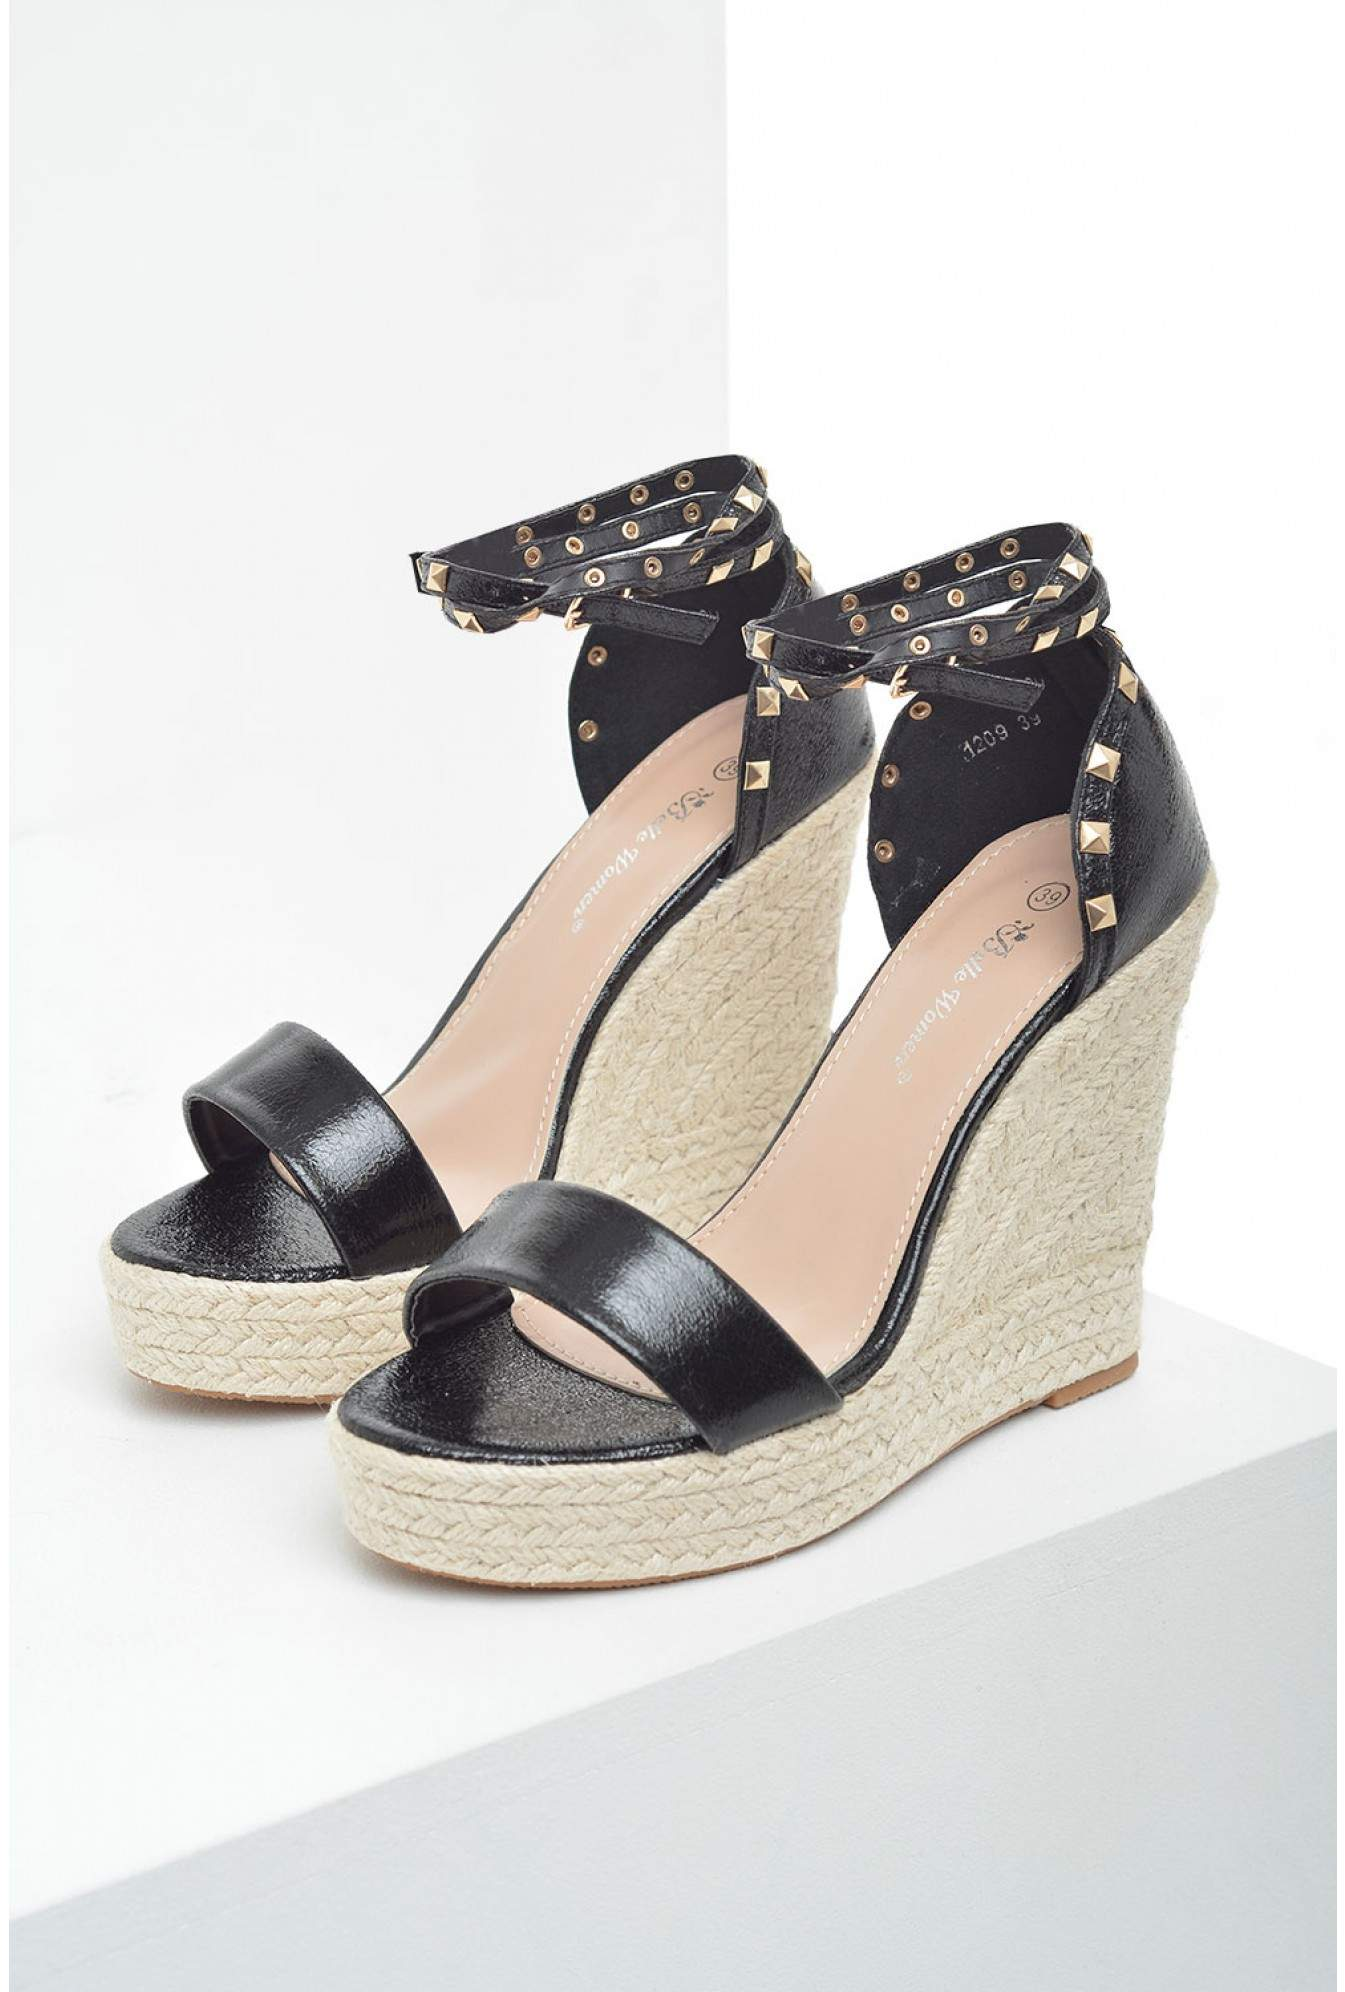 860b8e6adb5 Sandy Studded Espadrille Wedges in Black